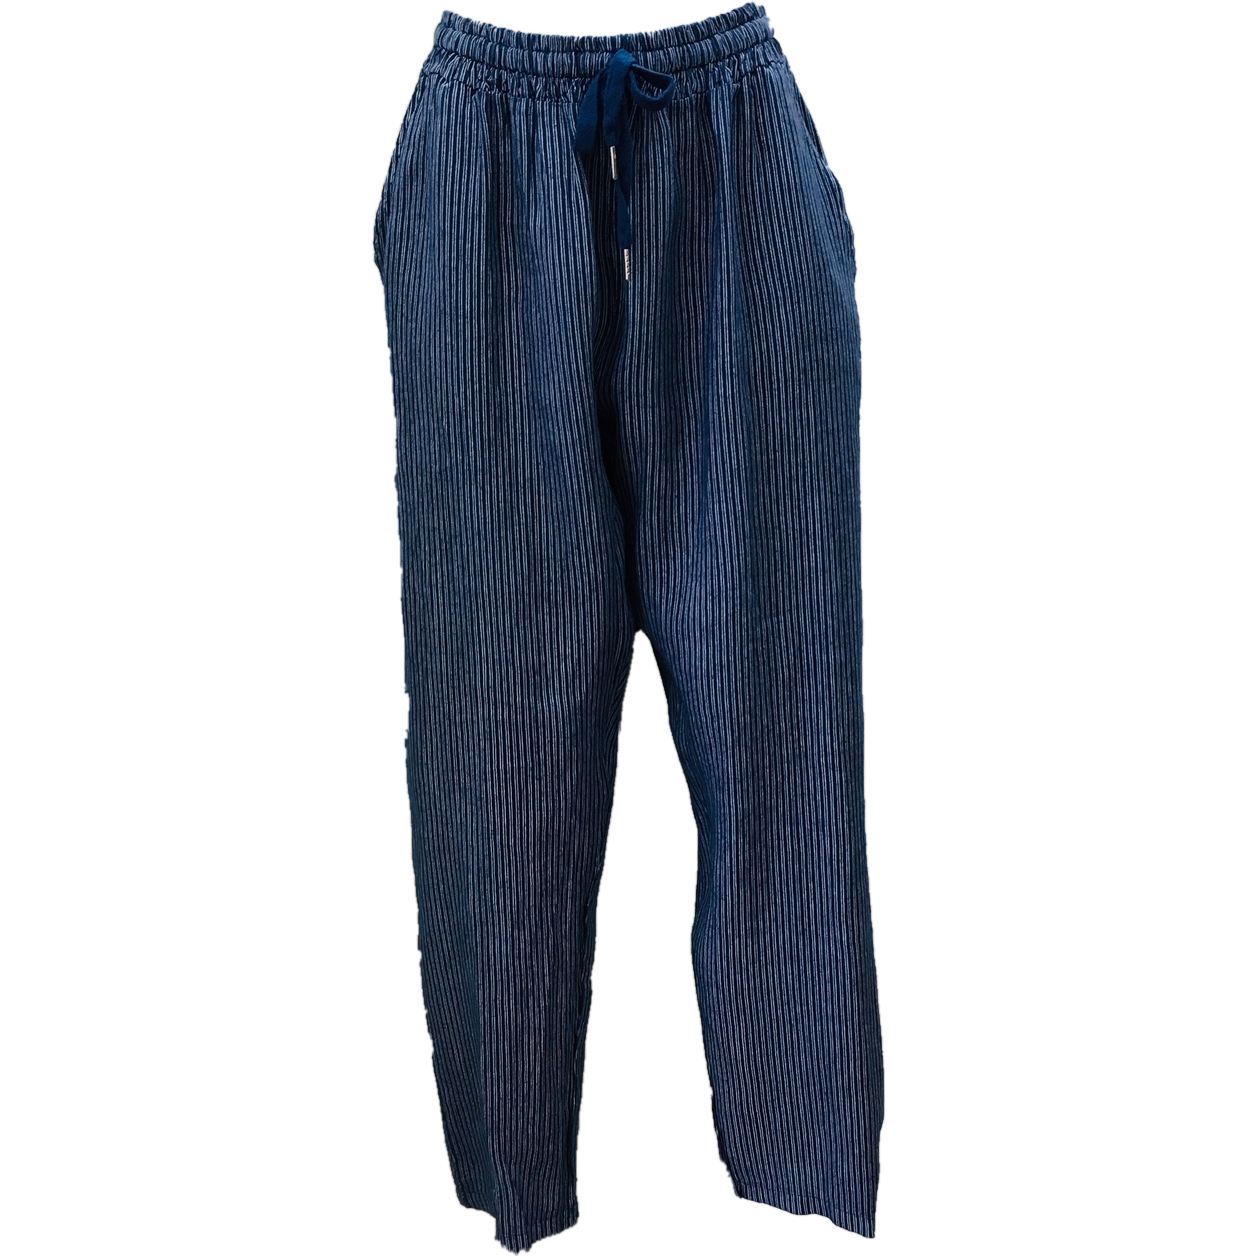 Talia Benson 100% Linen Thin Striped linen pant in Indigo